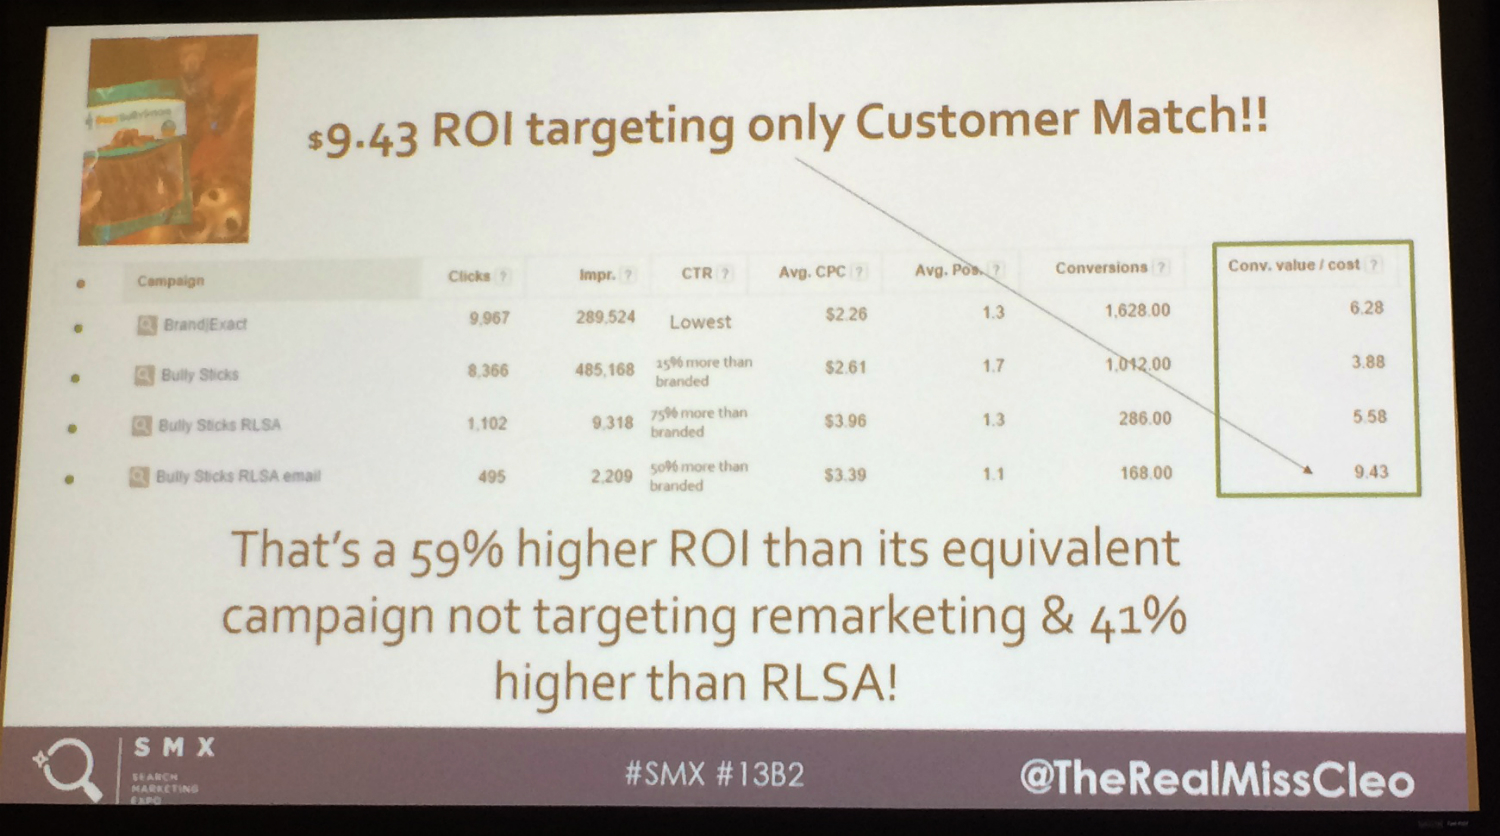 Customer Match ROI case study